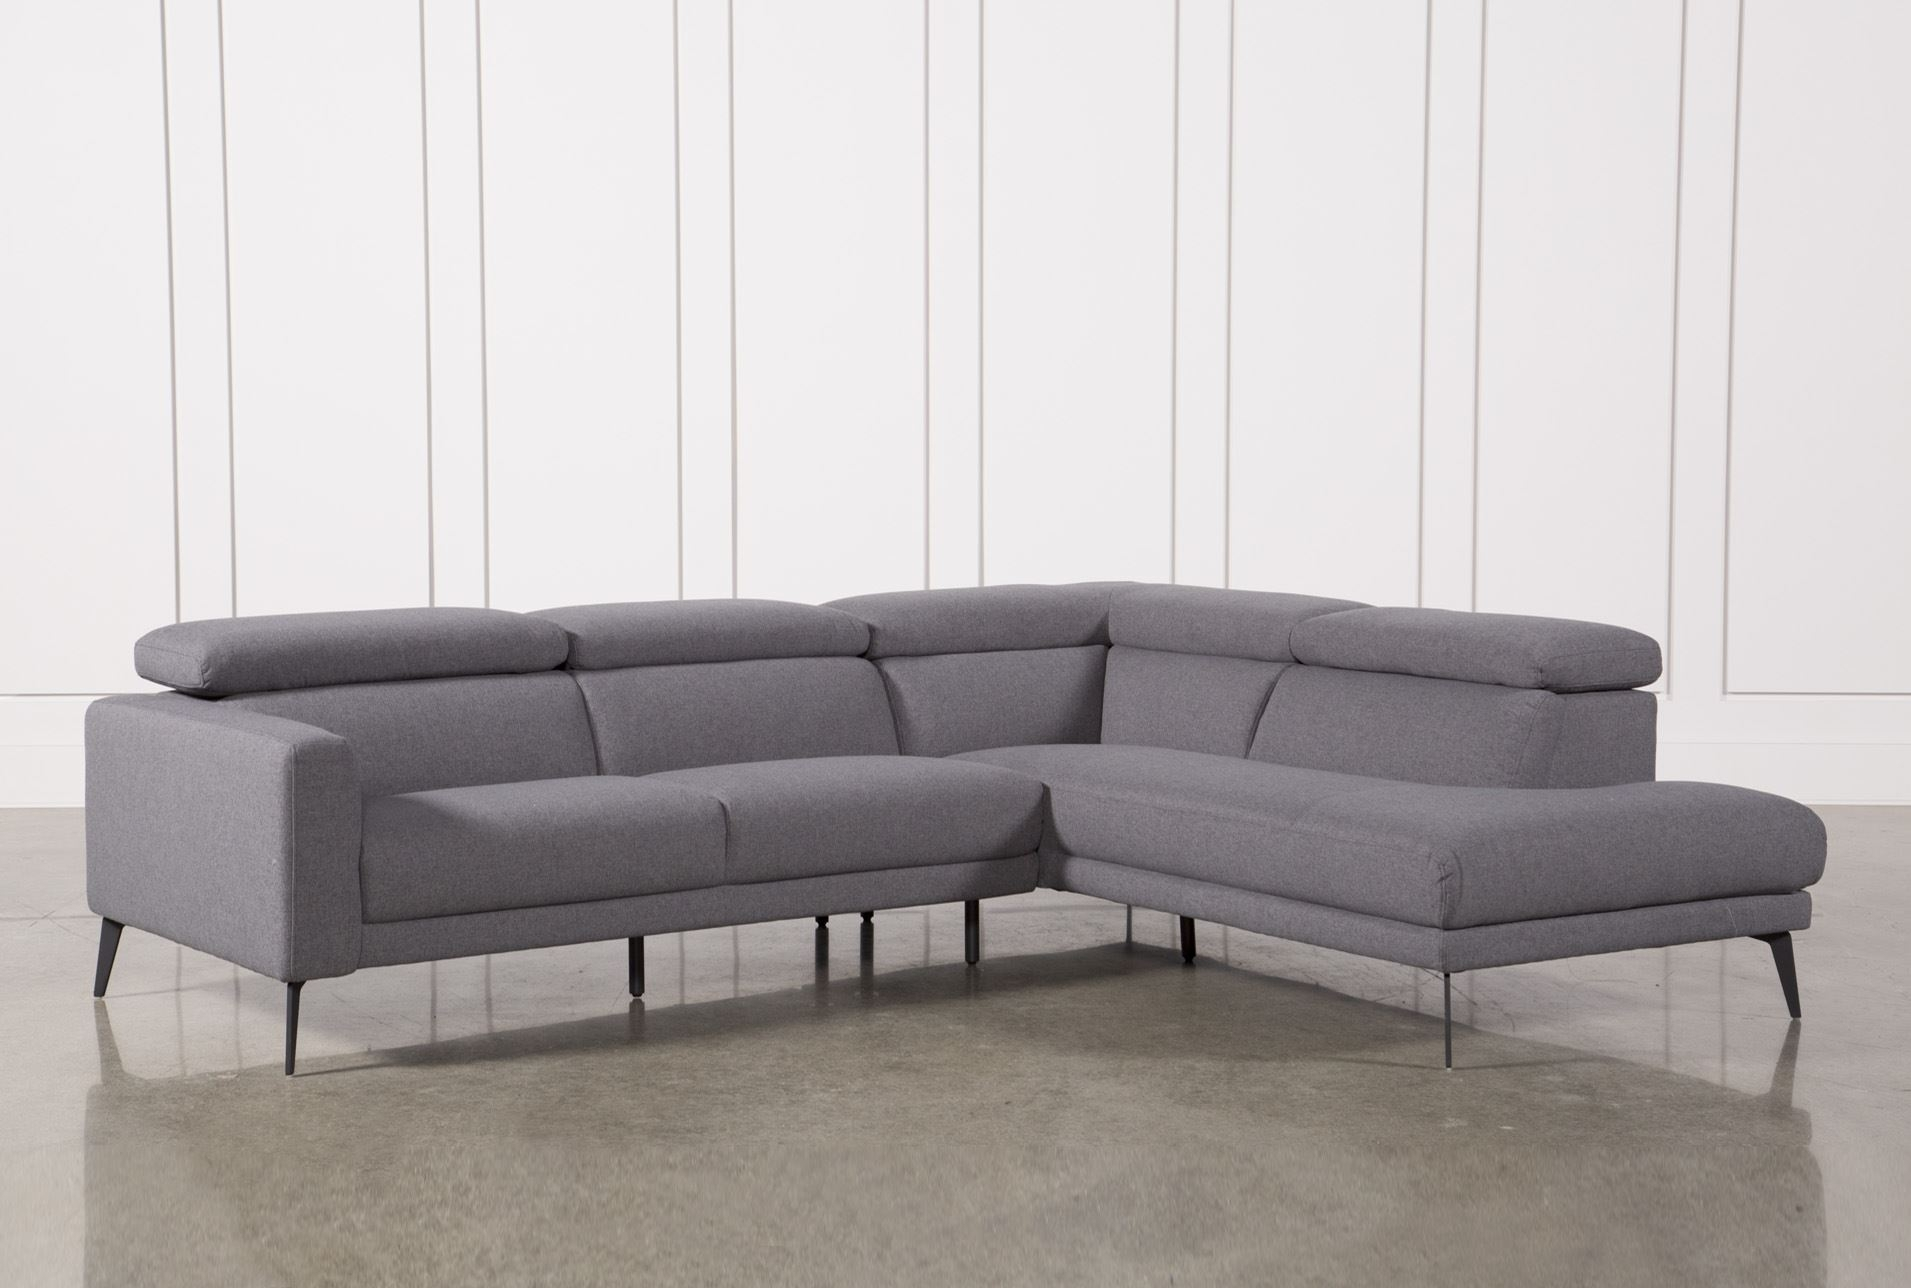 Awesome Collection Of Raf Chaise On Neo Grey 2 Piece Sectional W Raf With Norfolk Grey 3 Piece Sectionals With Laf Chaise (View 17 of 25)